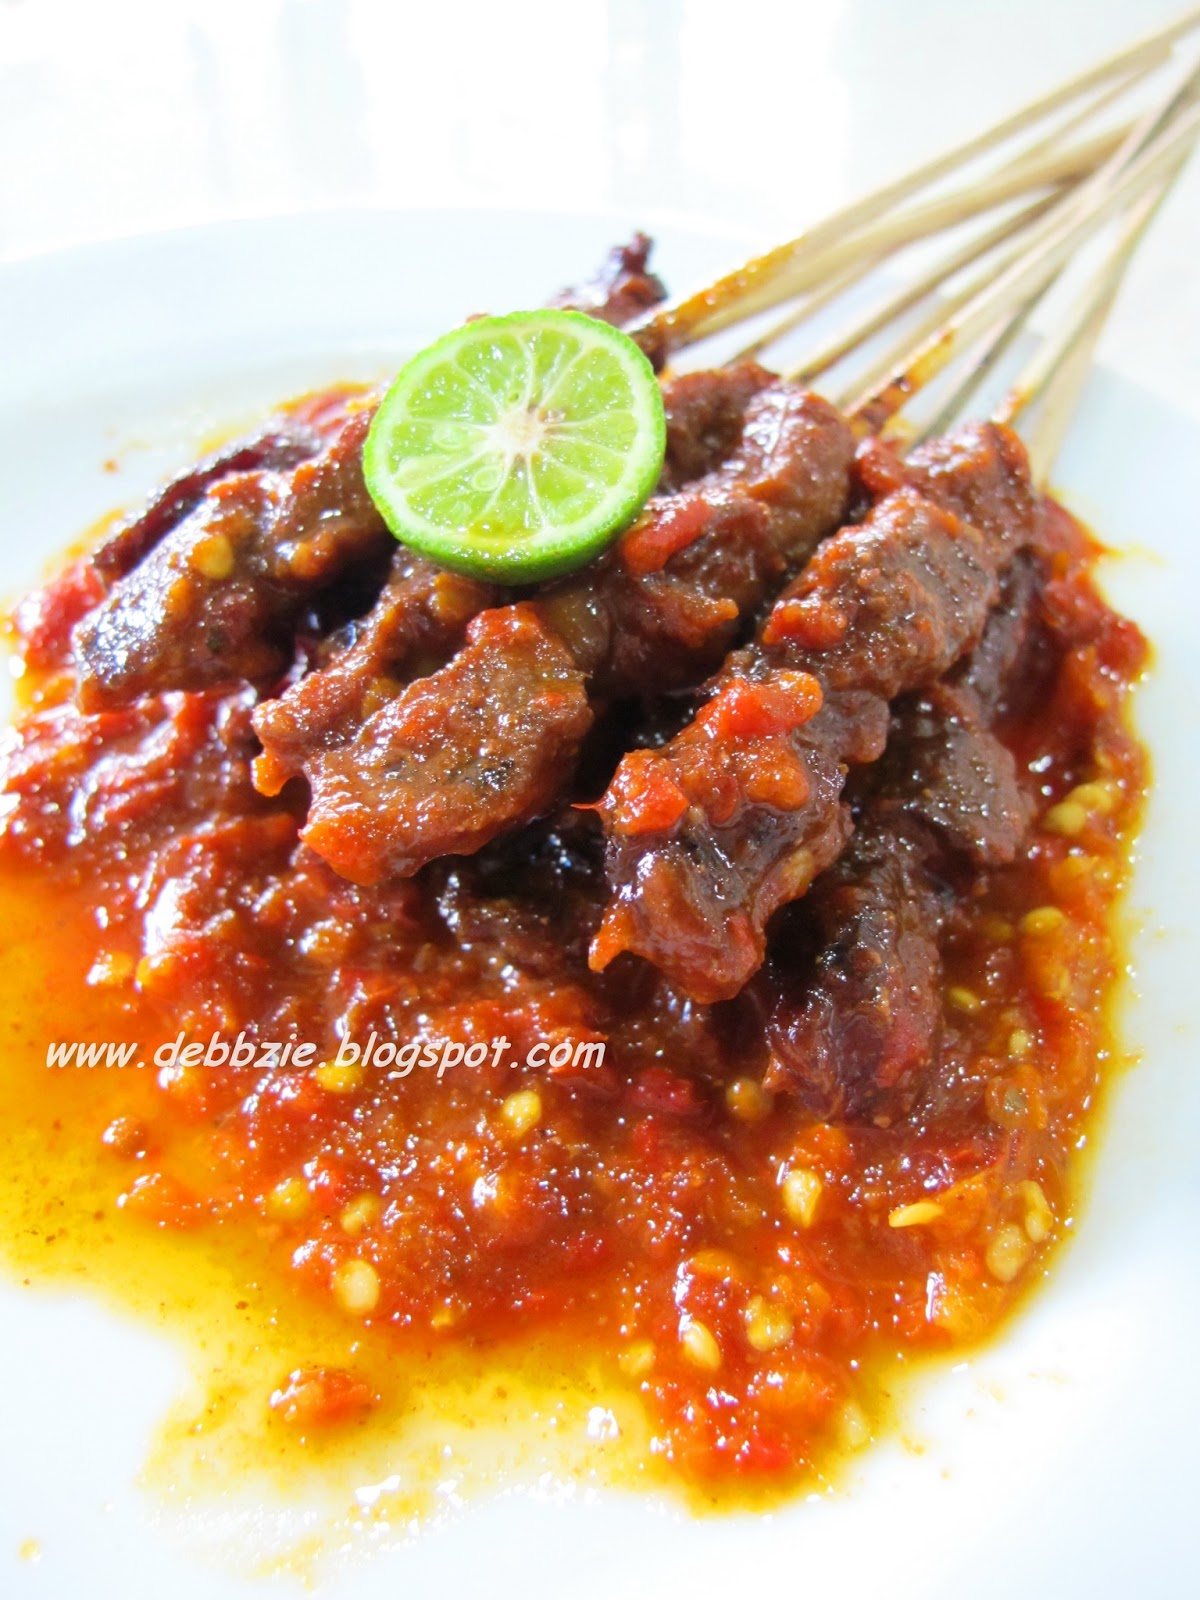 Sate Plecing (beef sate with plecing sauce)